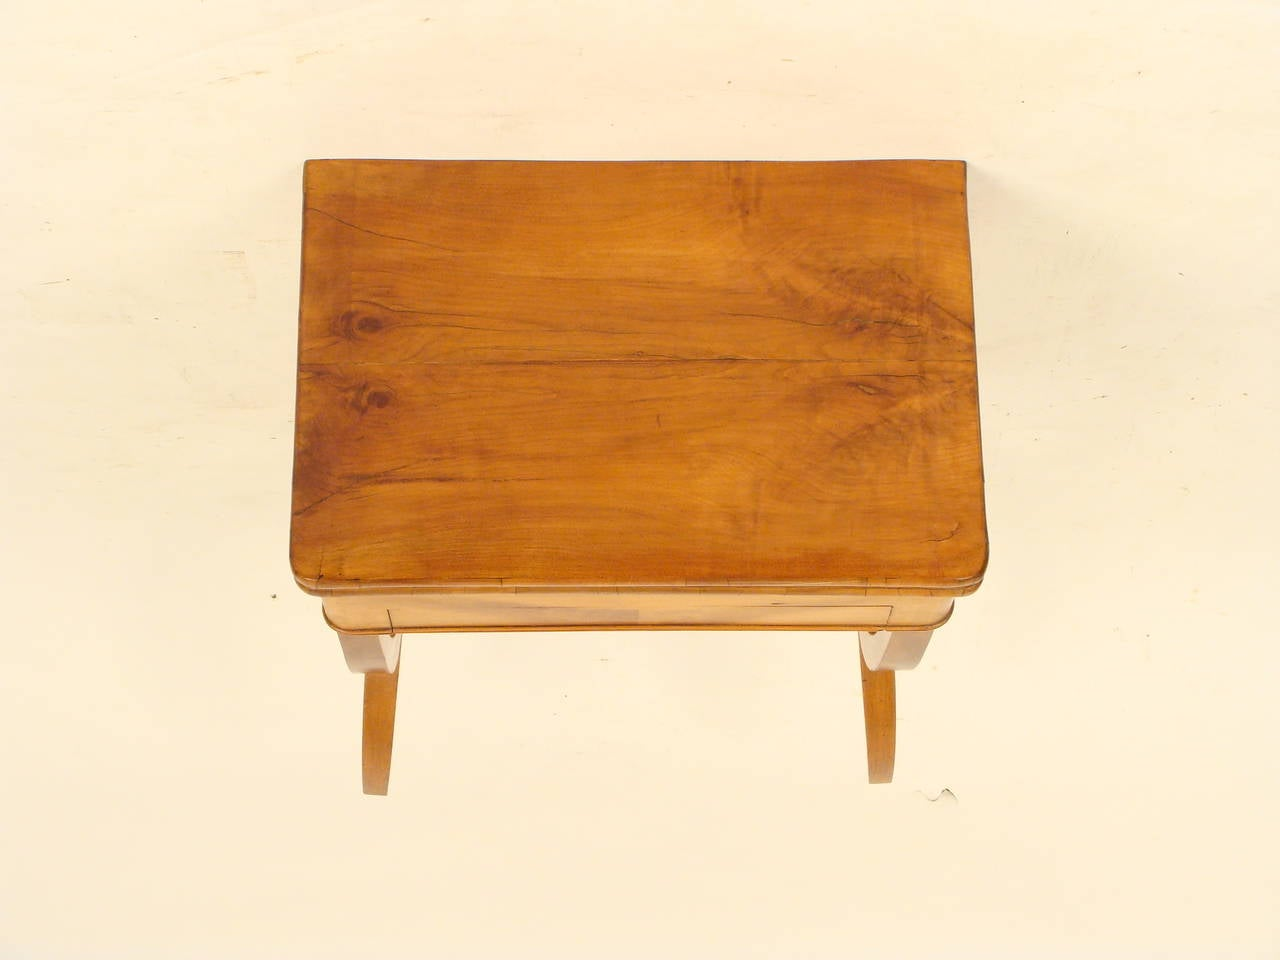 Louis philippe style games table at 1stdibs - Table ronde style louis philippe ...